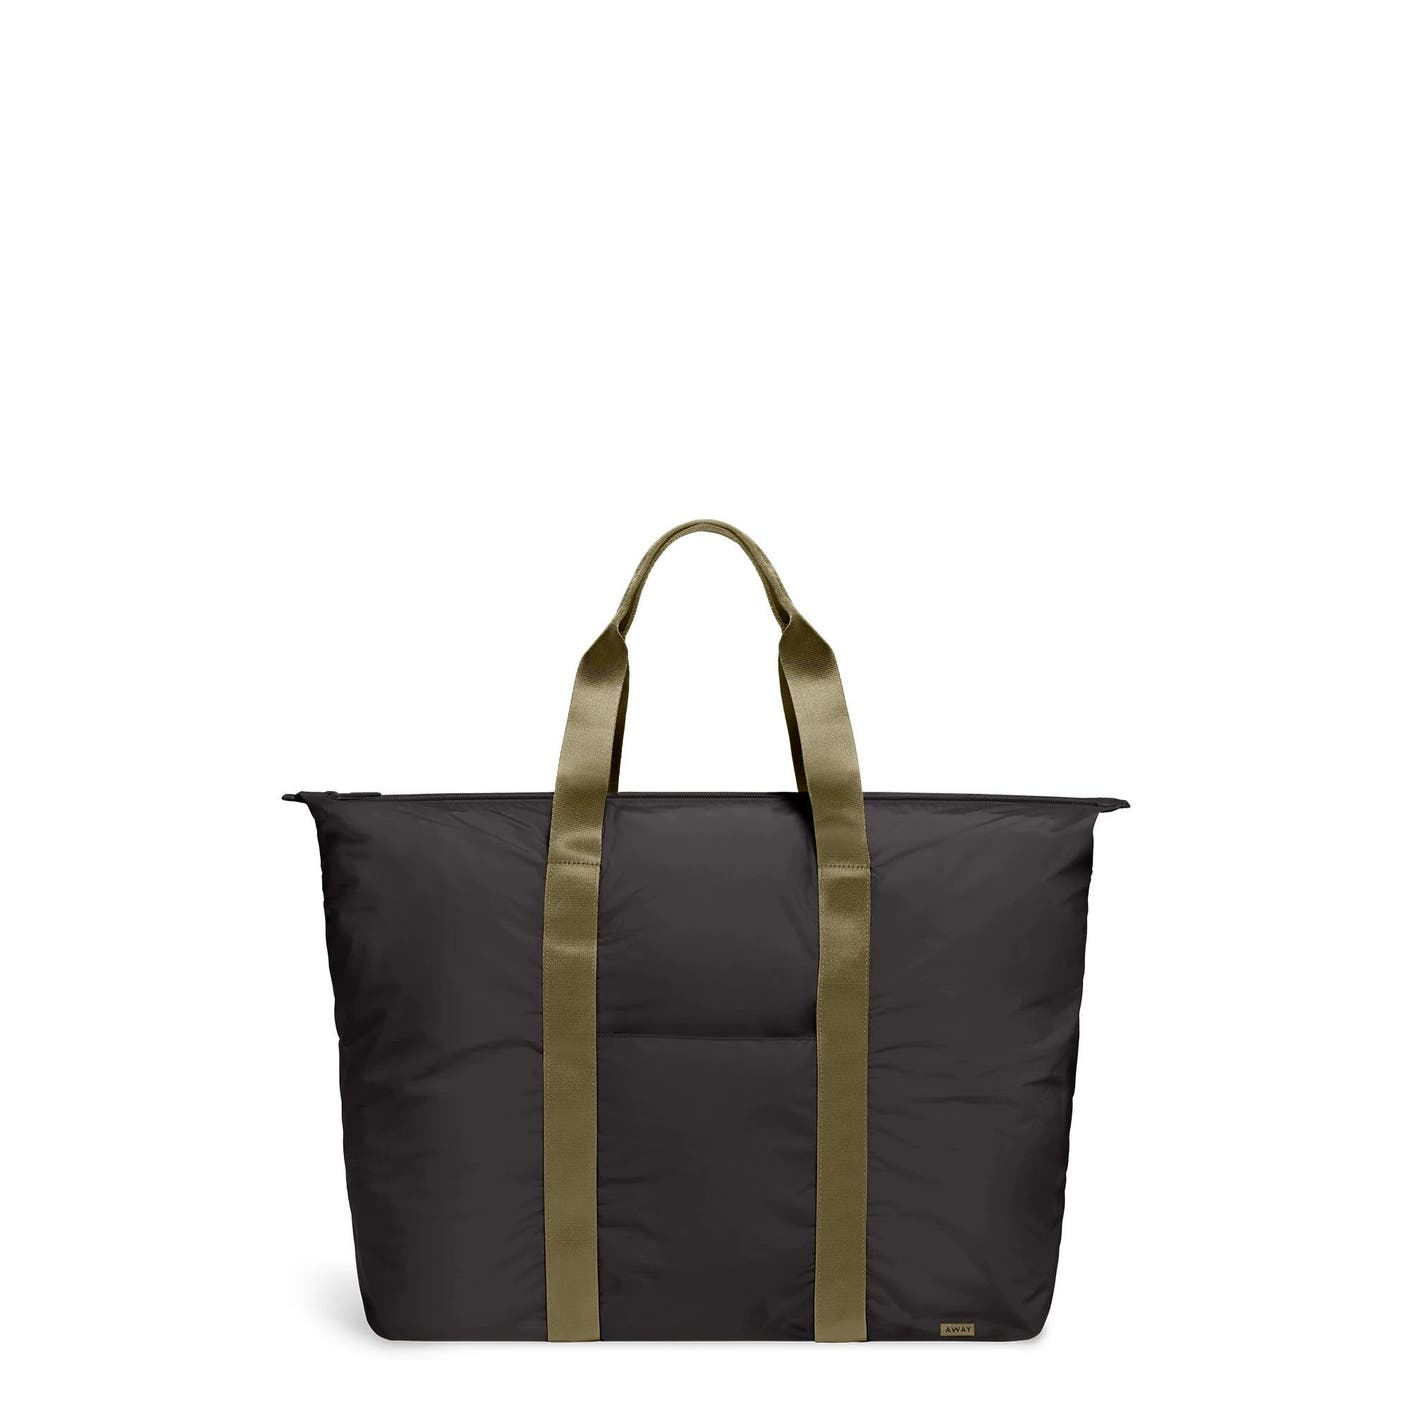 The Packable Carryall